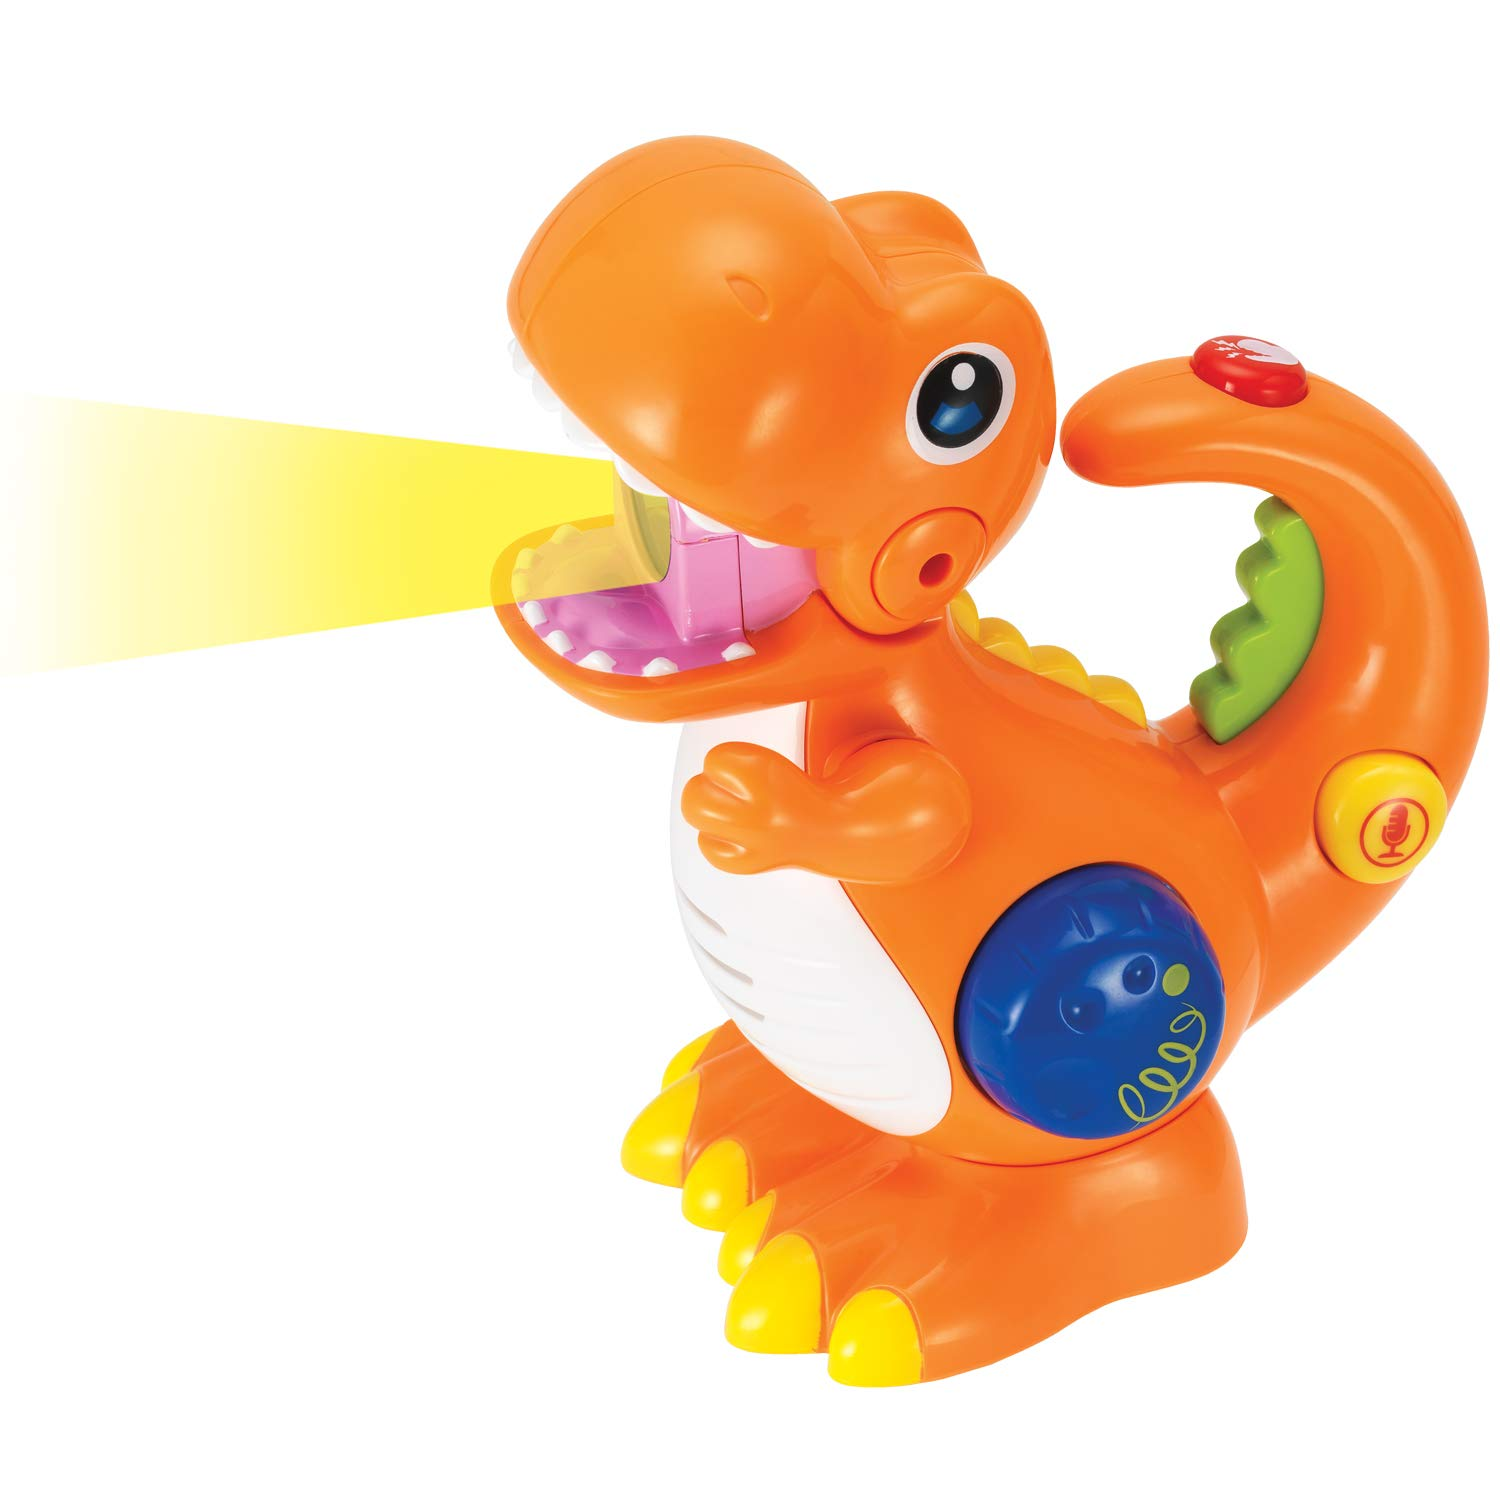 Details about KiddoLab Tikki The Dino Voice Changer, Recording & Playback  Toy